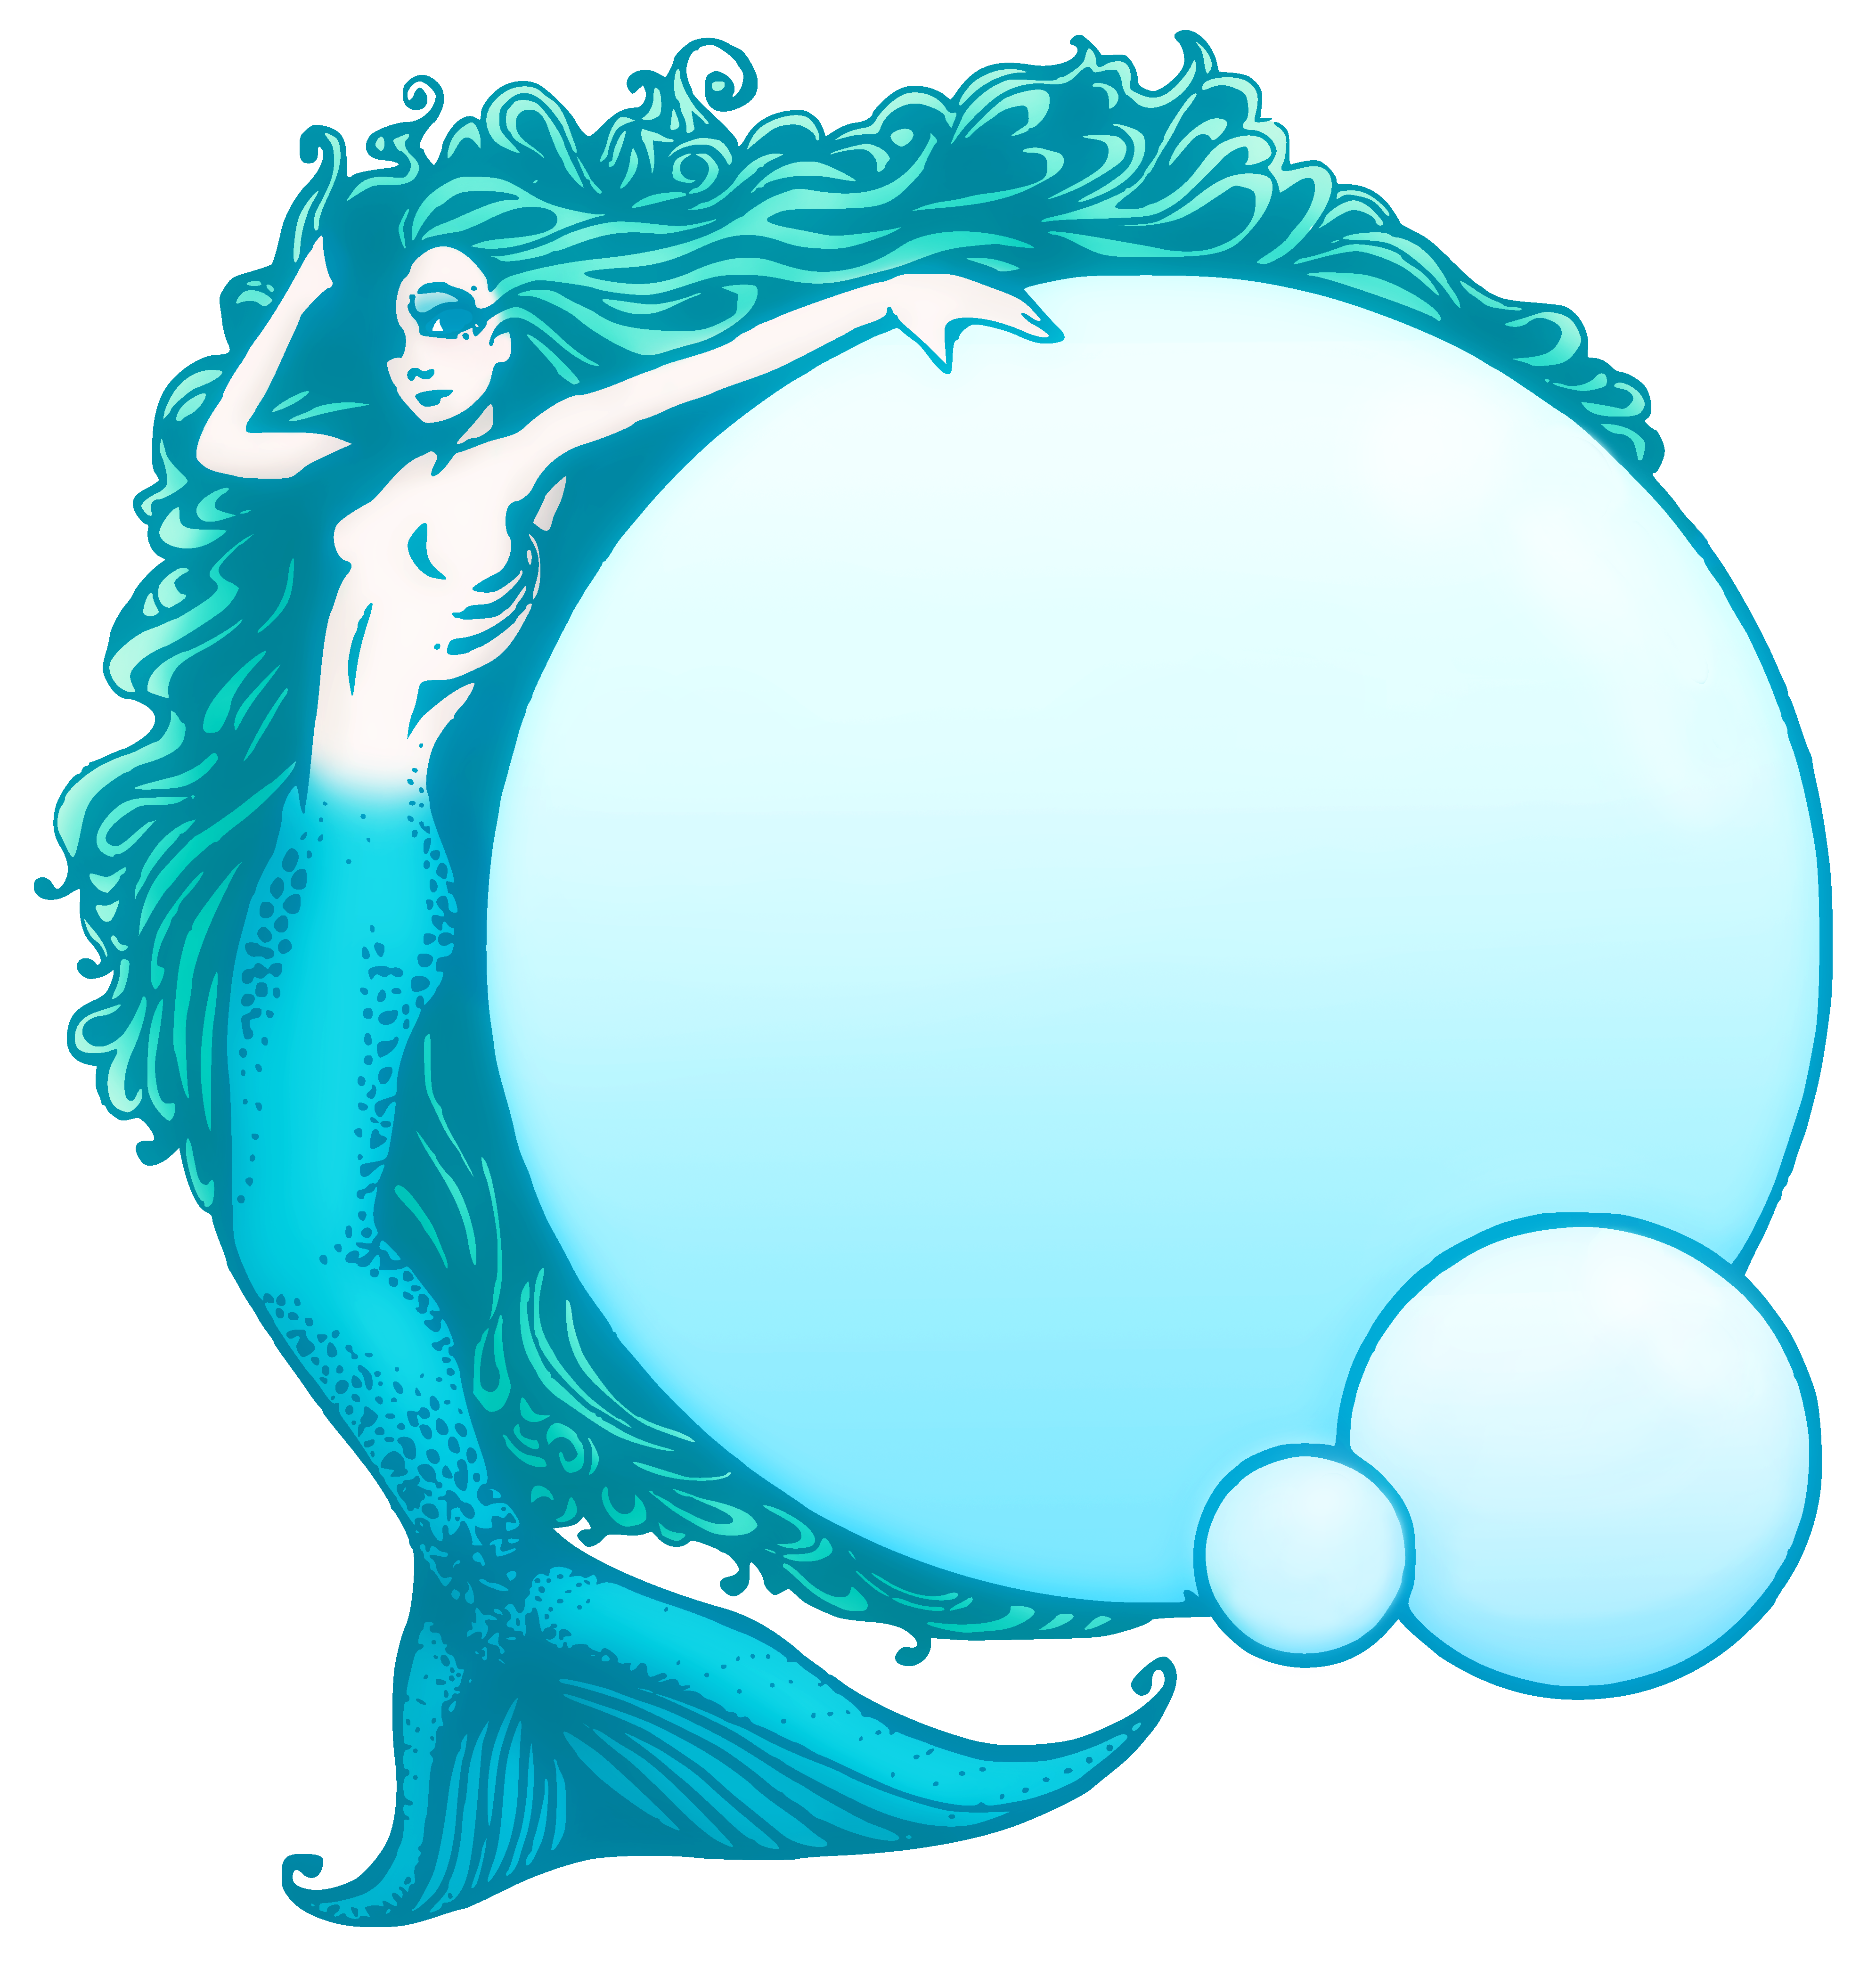 Mermaid clipart with fish png royalty free stock Mermaid Public Domain Clipart - Free Clip Art png royalty free stock